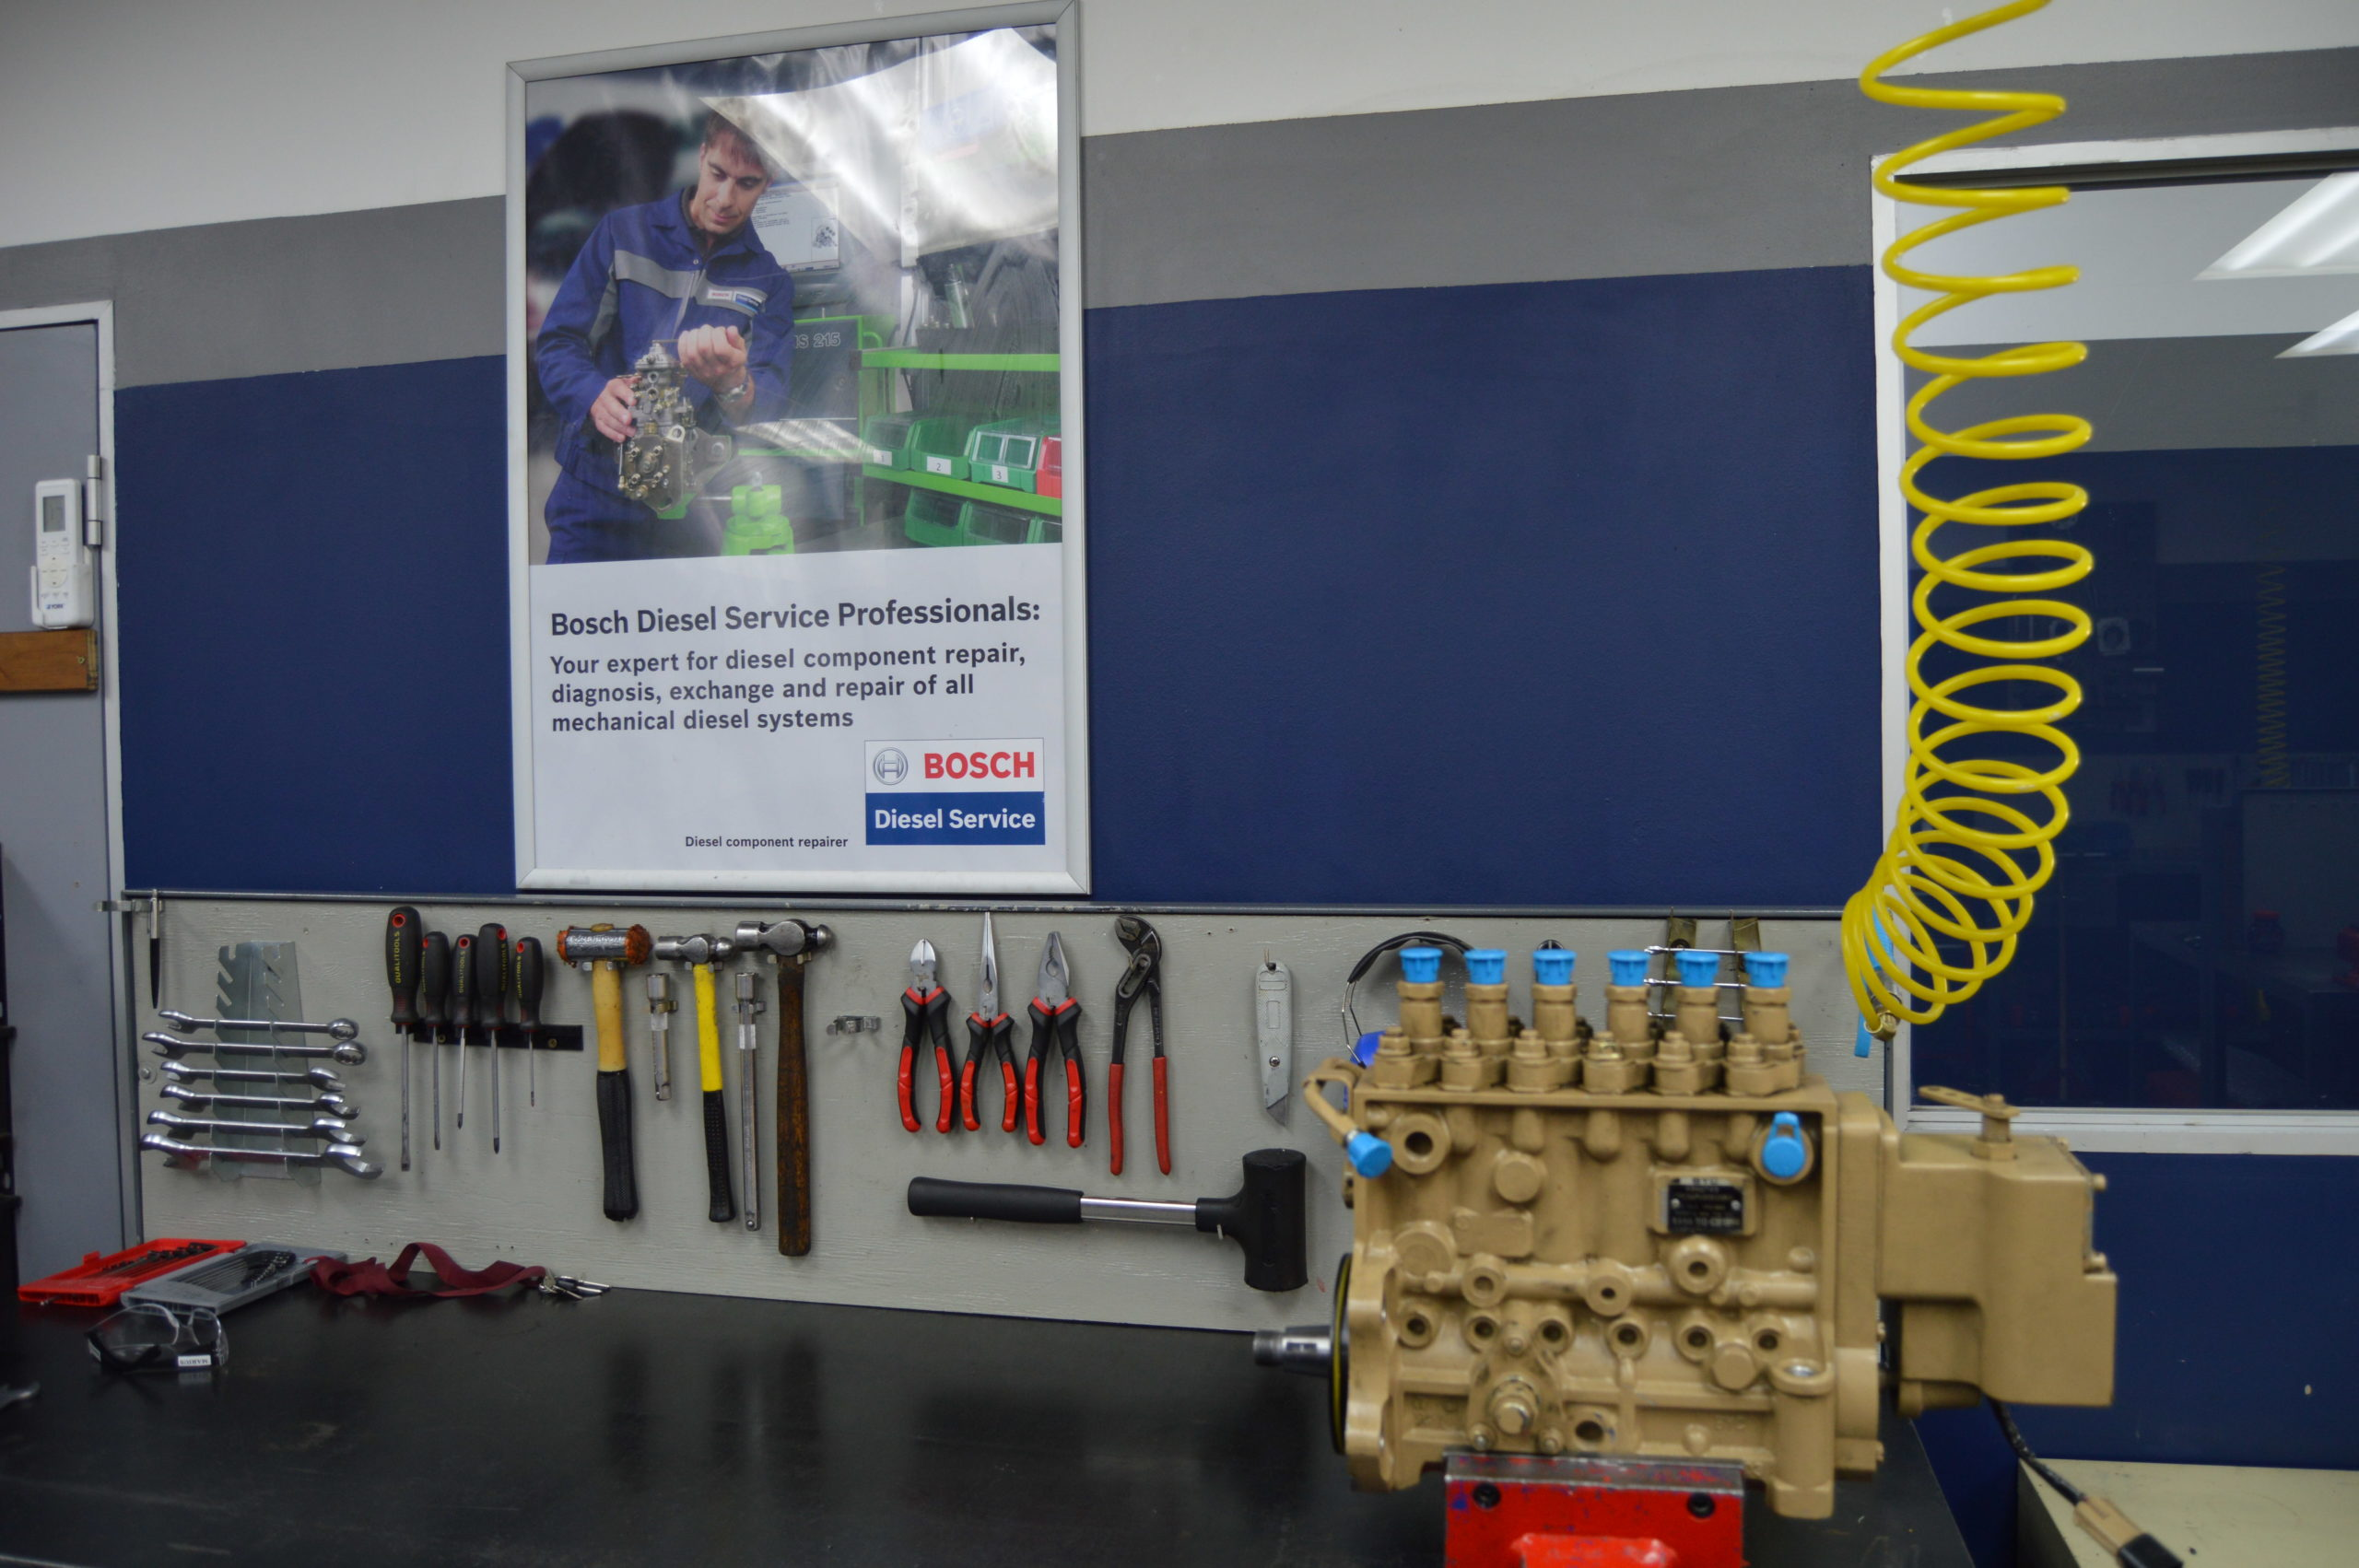 DON'T LET A FAULTY INJECTION SYSTEM STOP YOUR GENSET